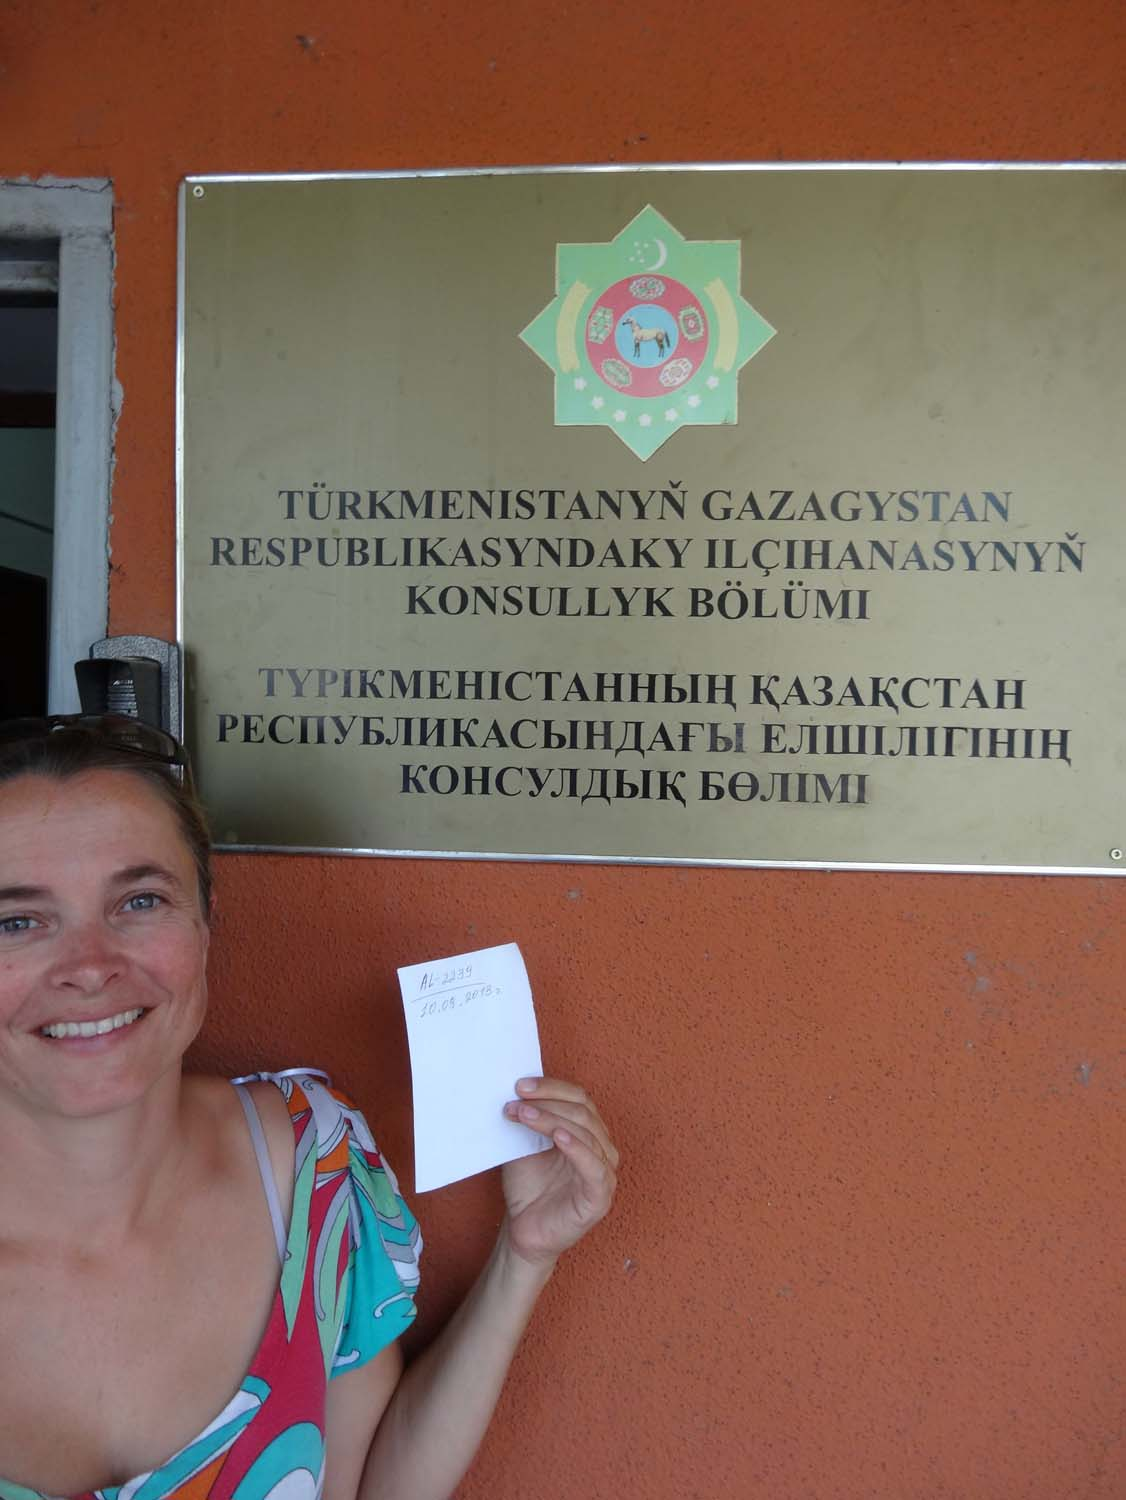 after applying for our Turkmenistan visas we get a bit of paper with a number and a date on it